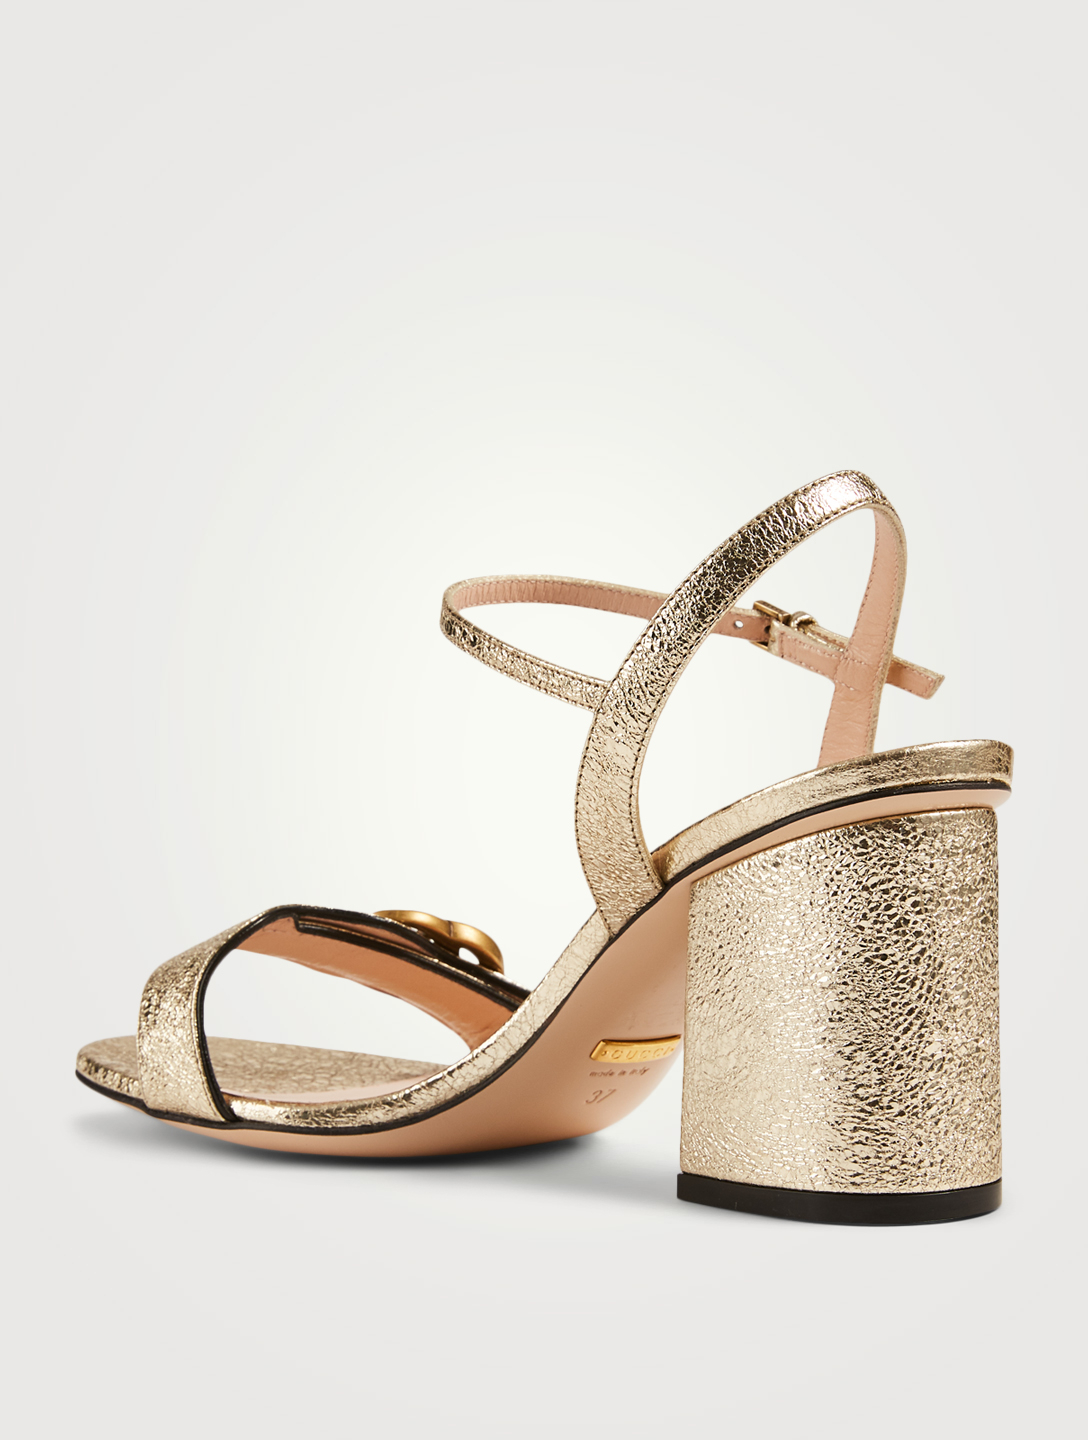 GUCCI Metallic Laminate Leather Heeled Sandals Women's Metallic